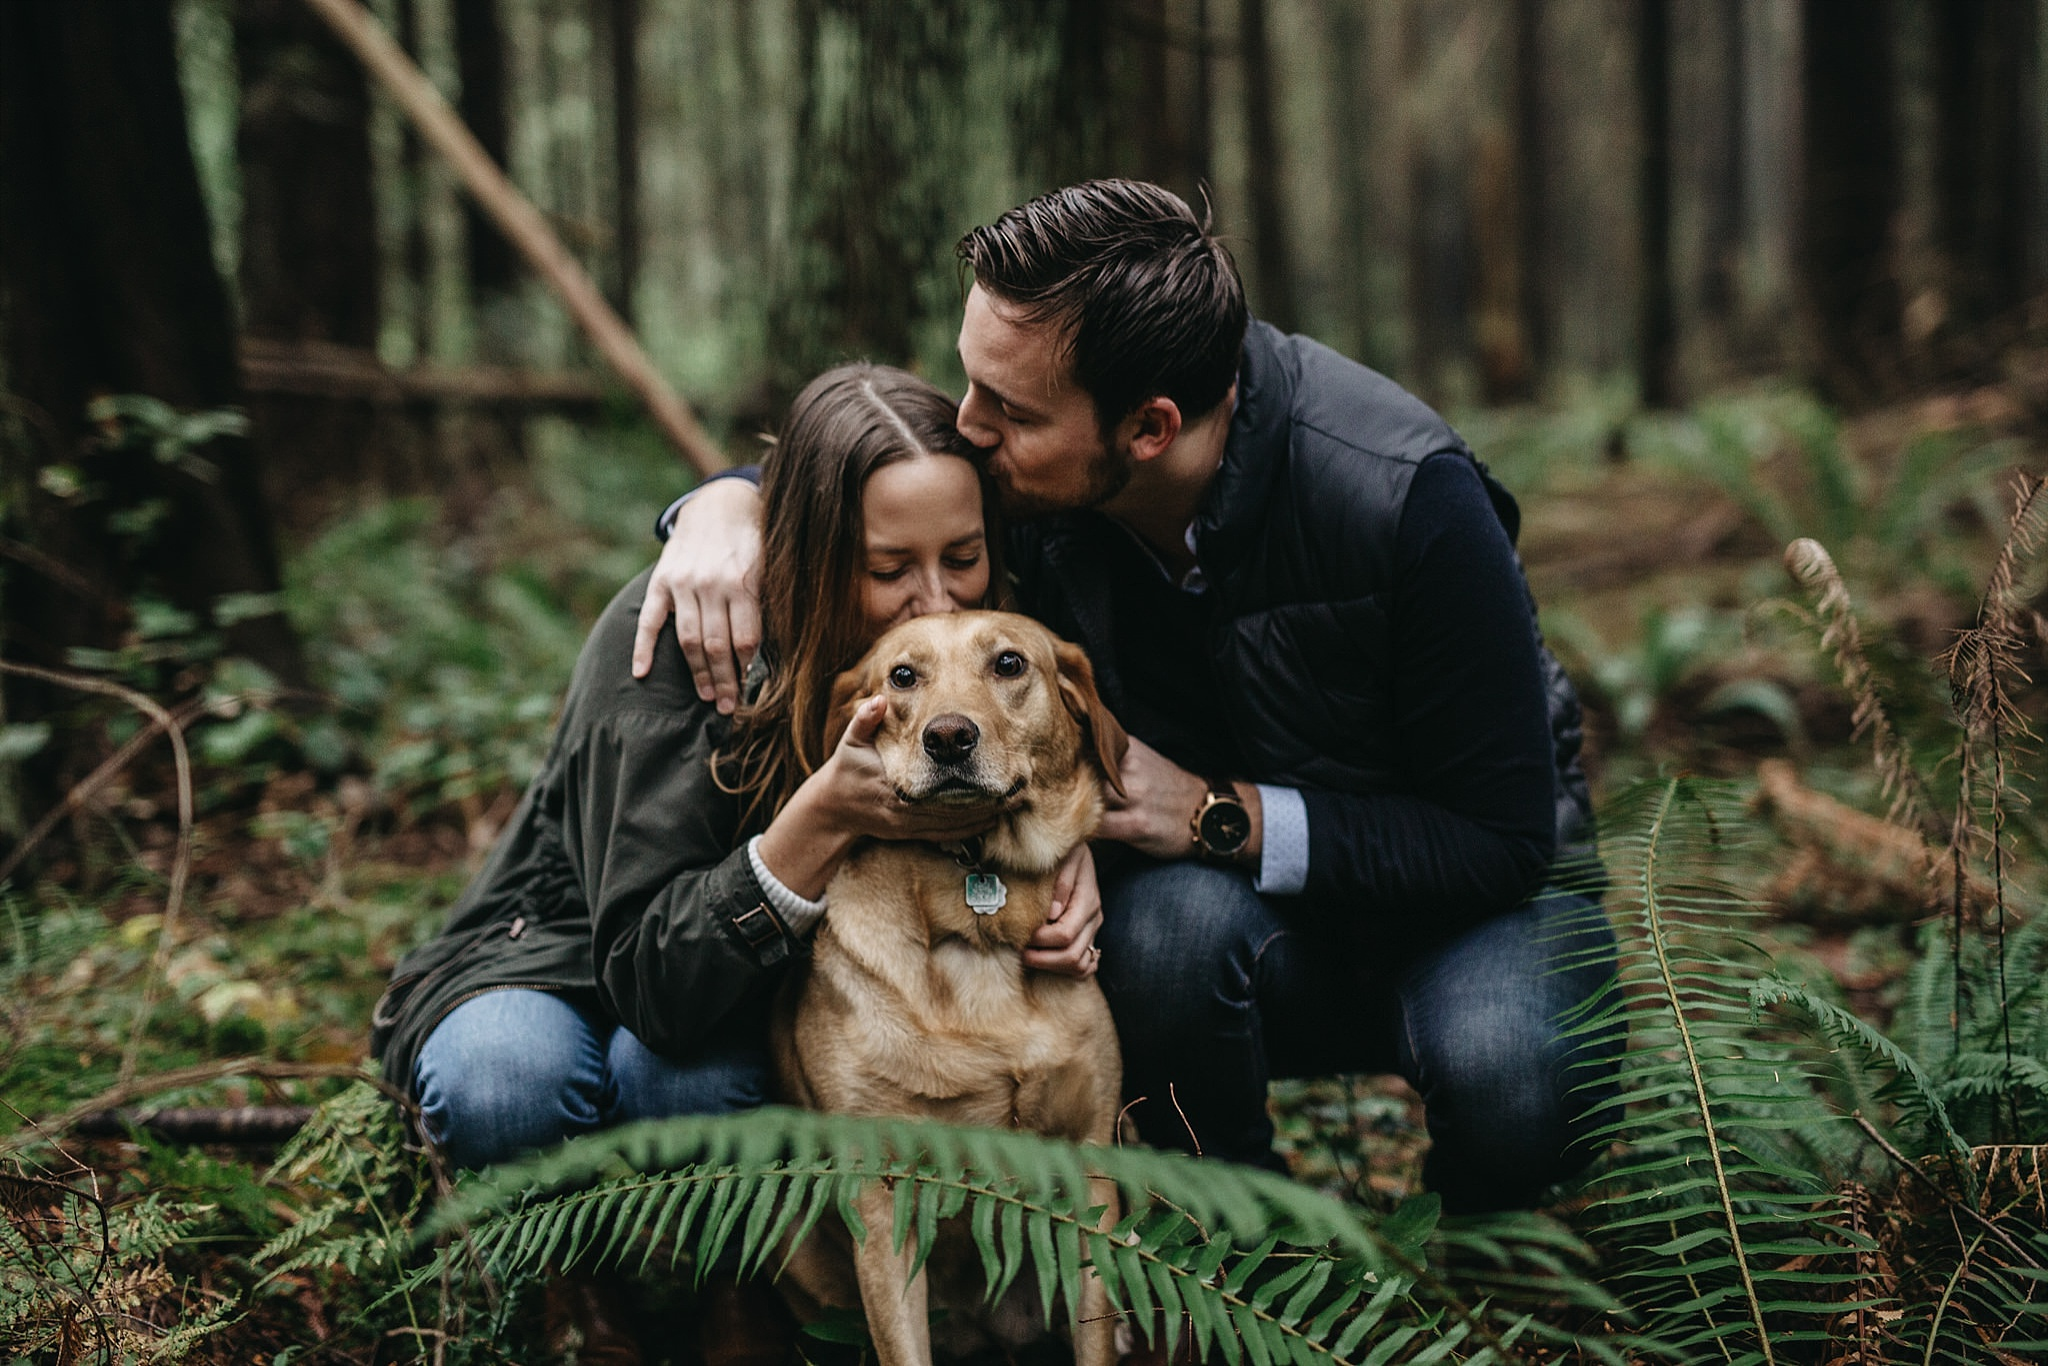 couple kissing dog engagement photos pacific spirit park forest trees